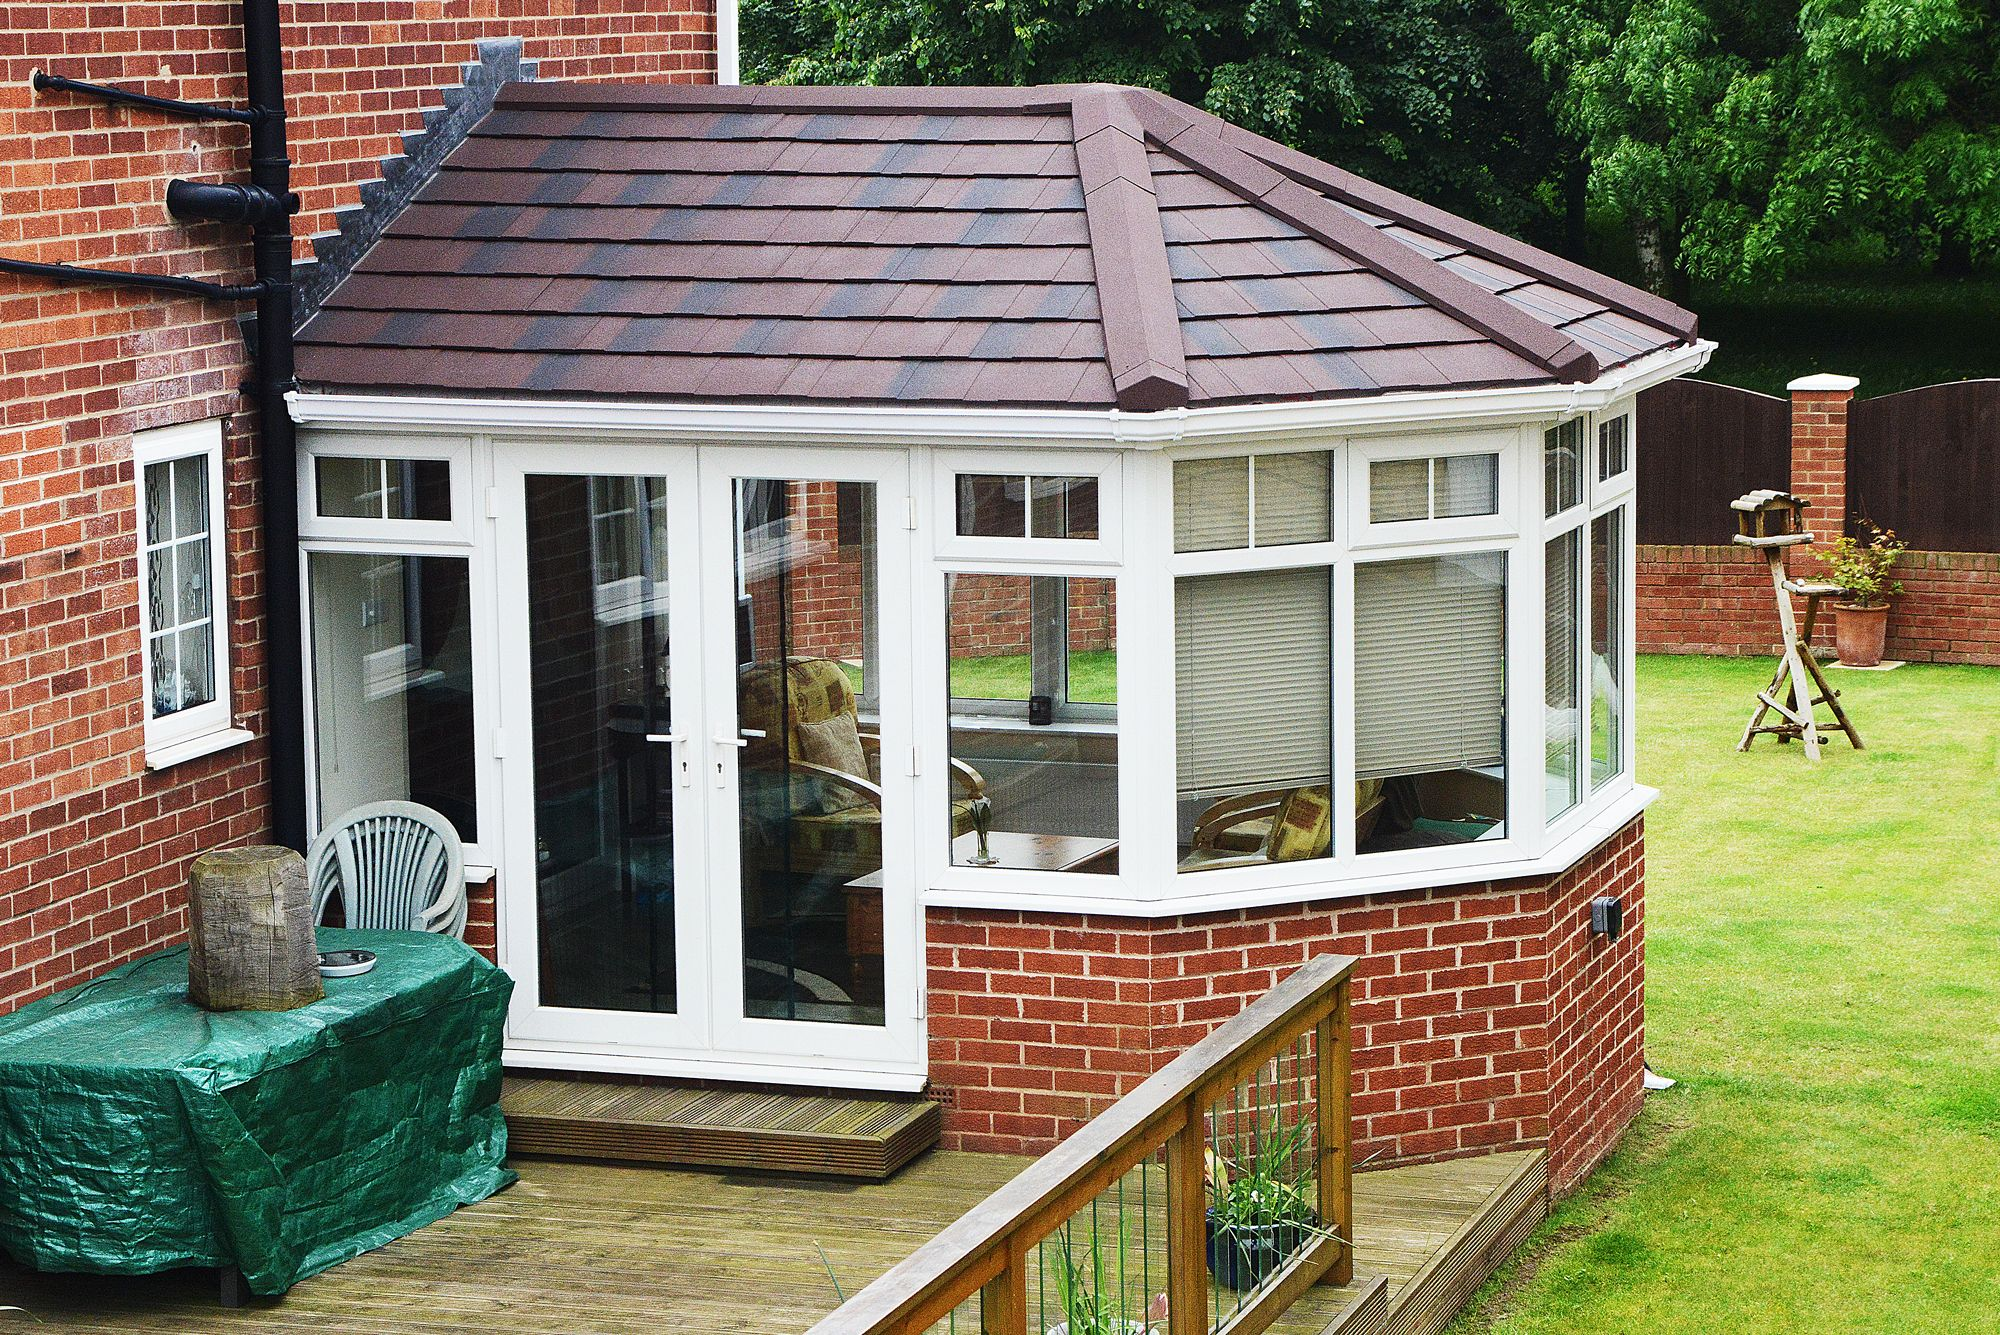 Large Supalite Tiled Conservatory Roof With Burnt Umber Metrotiles And White Guttering To Match Exis Tiled Conservatory Roof Conservatory Roof Composite Door